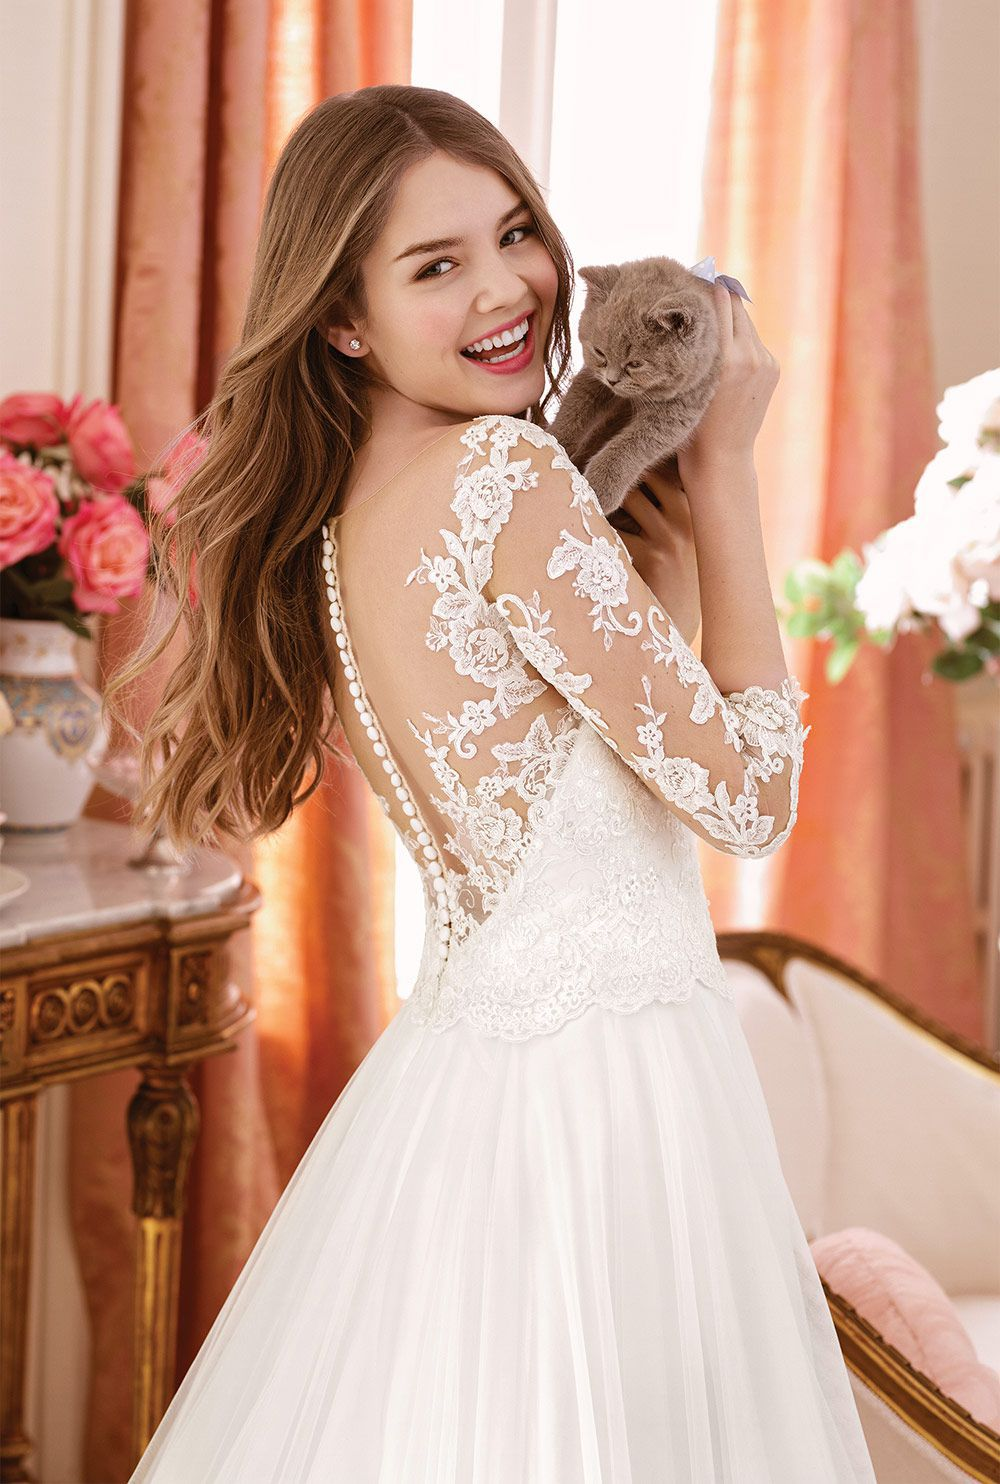 Sweetheart Gowns Style 11068 Tulle A-line Gown with Sequined Beaded Appliques